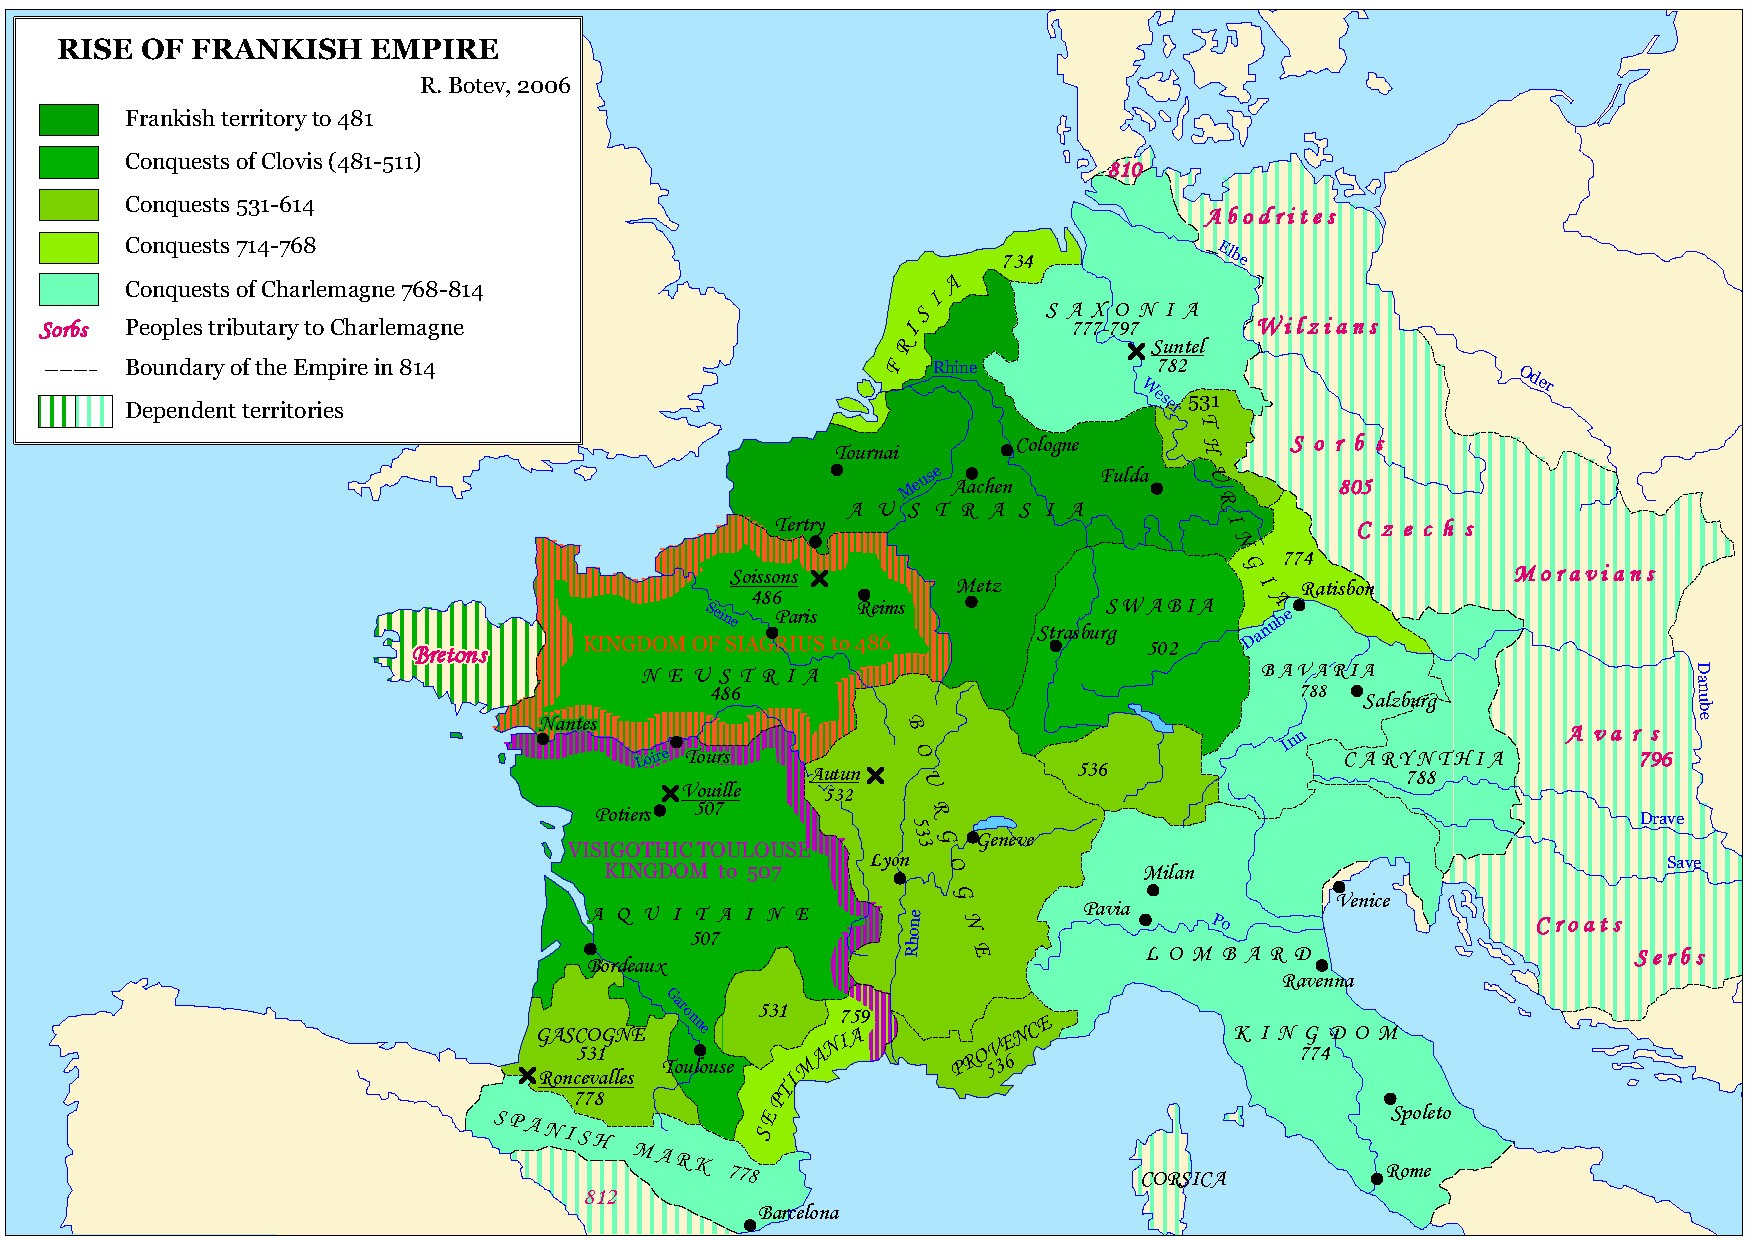 Common Currency Area: Roman Empire Europe, 815 CE. In 1066 CE, the Franks Launched Their Re-Conquest of Great Britain